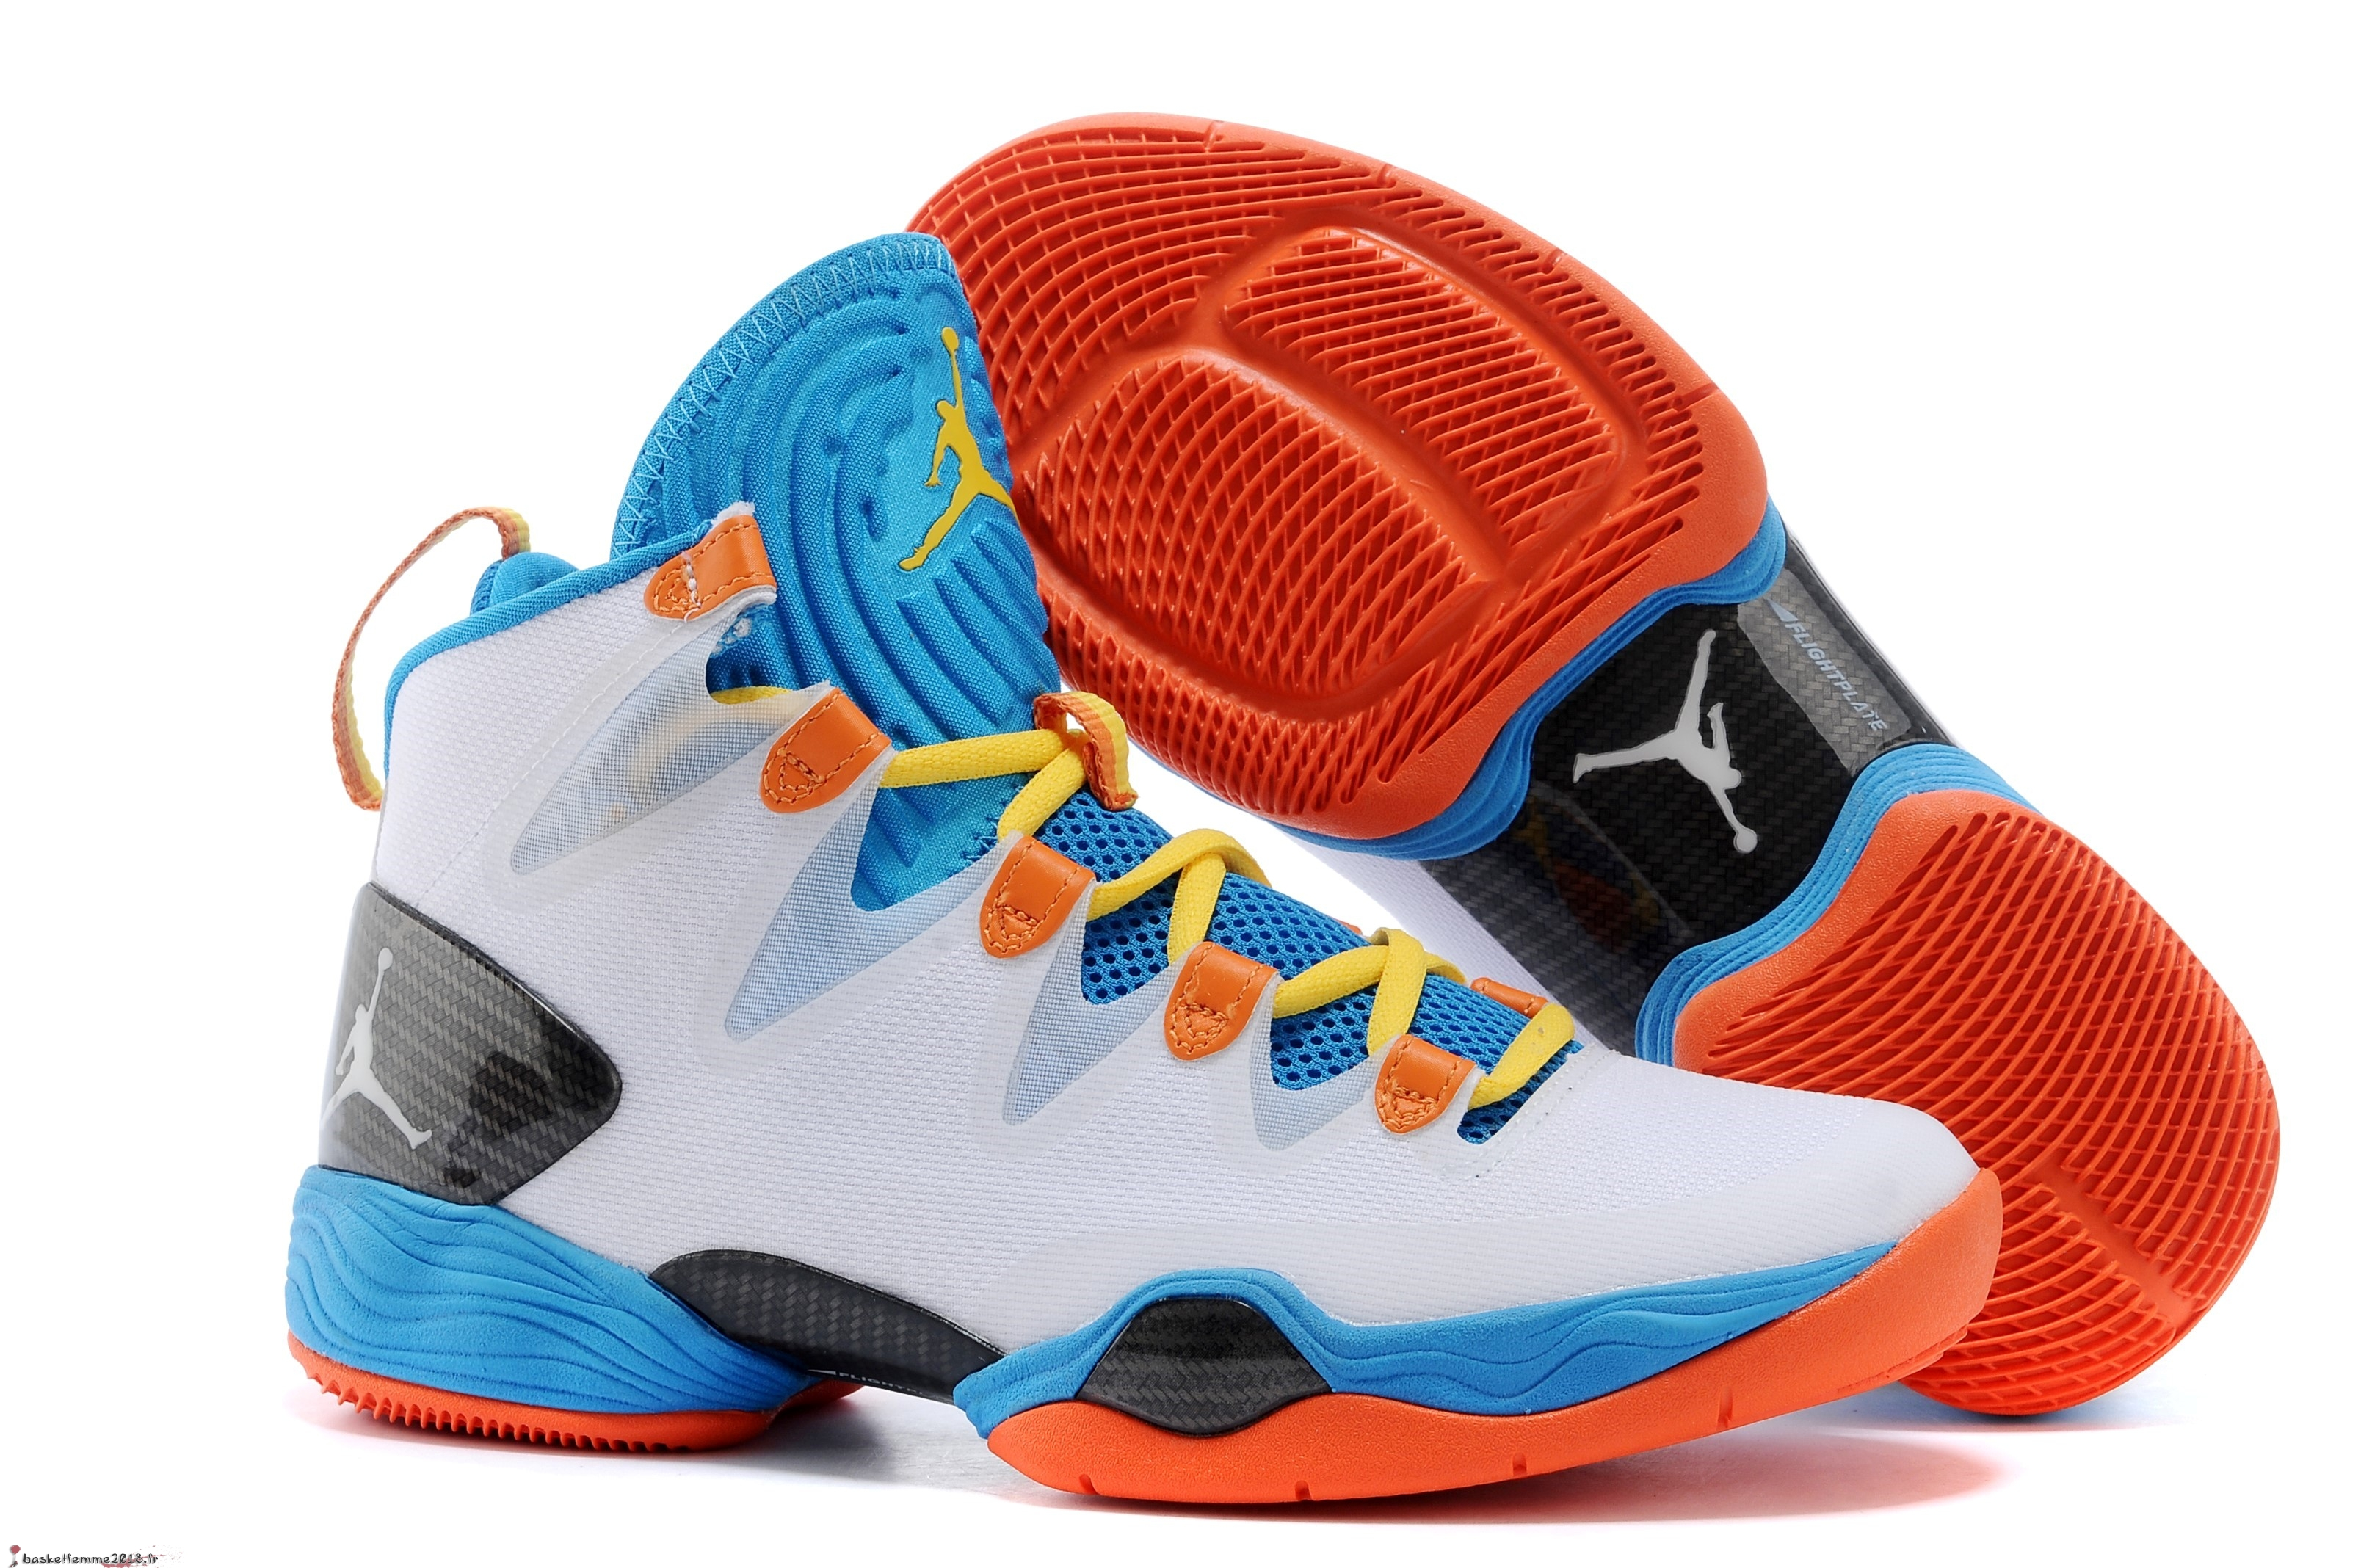 Air Jordan 28 Homme Blanc Bleu Orange Chaussure de Basket